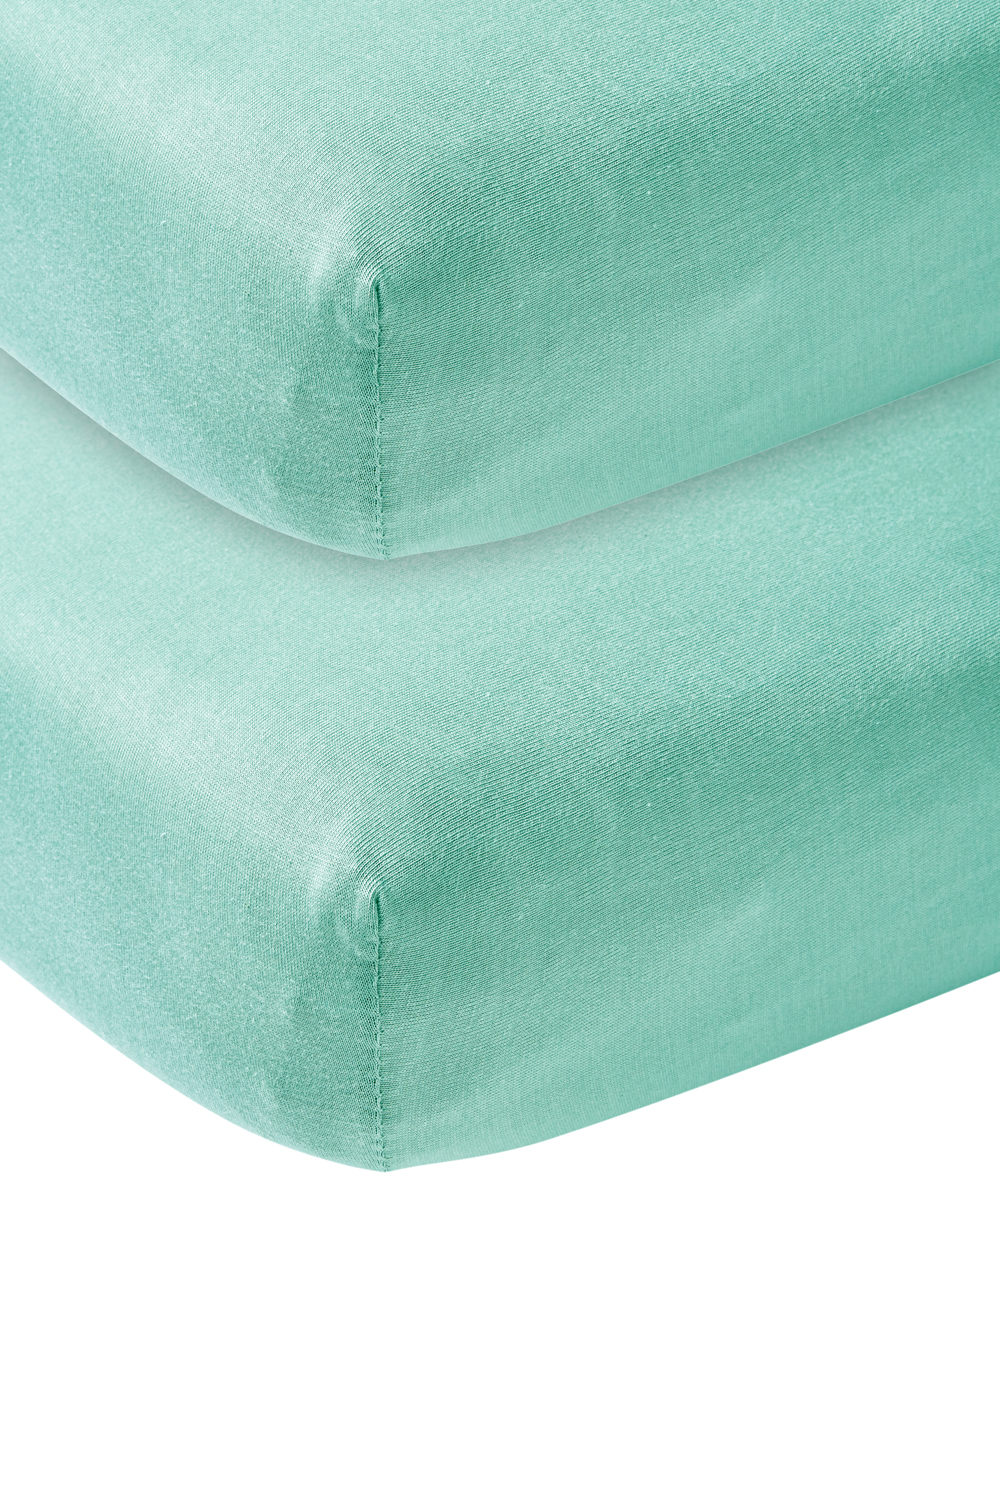 Jersey Hoeslaken 2-Pack - New Mint - 70x140/150cm